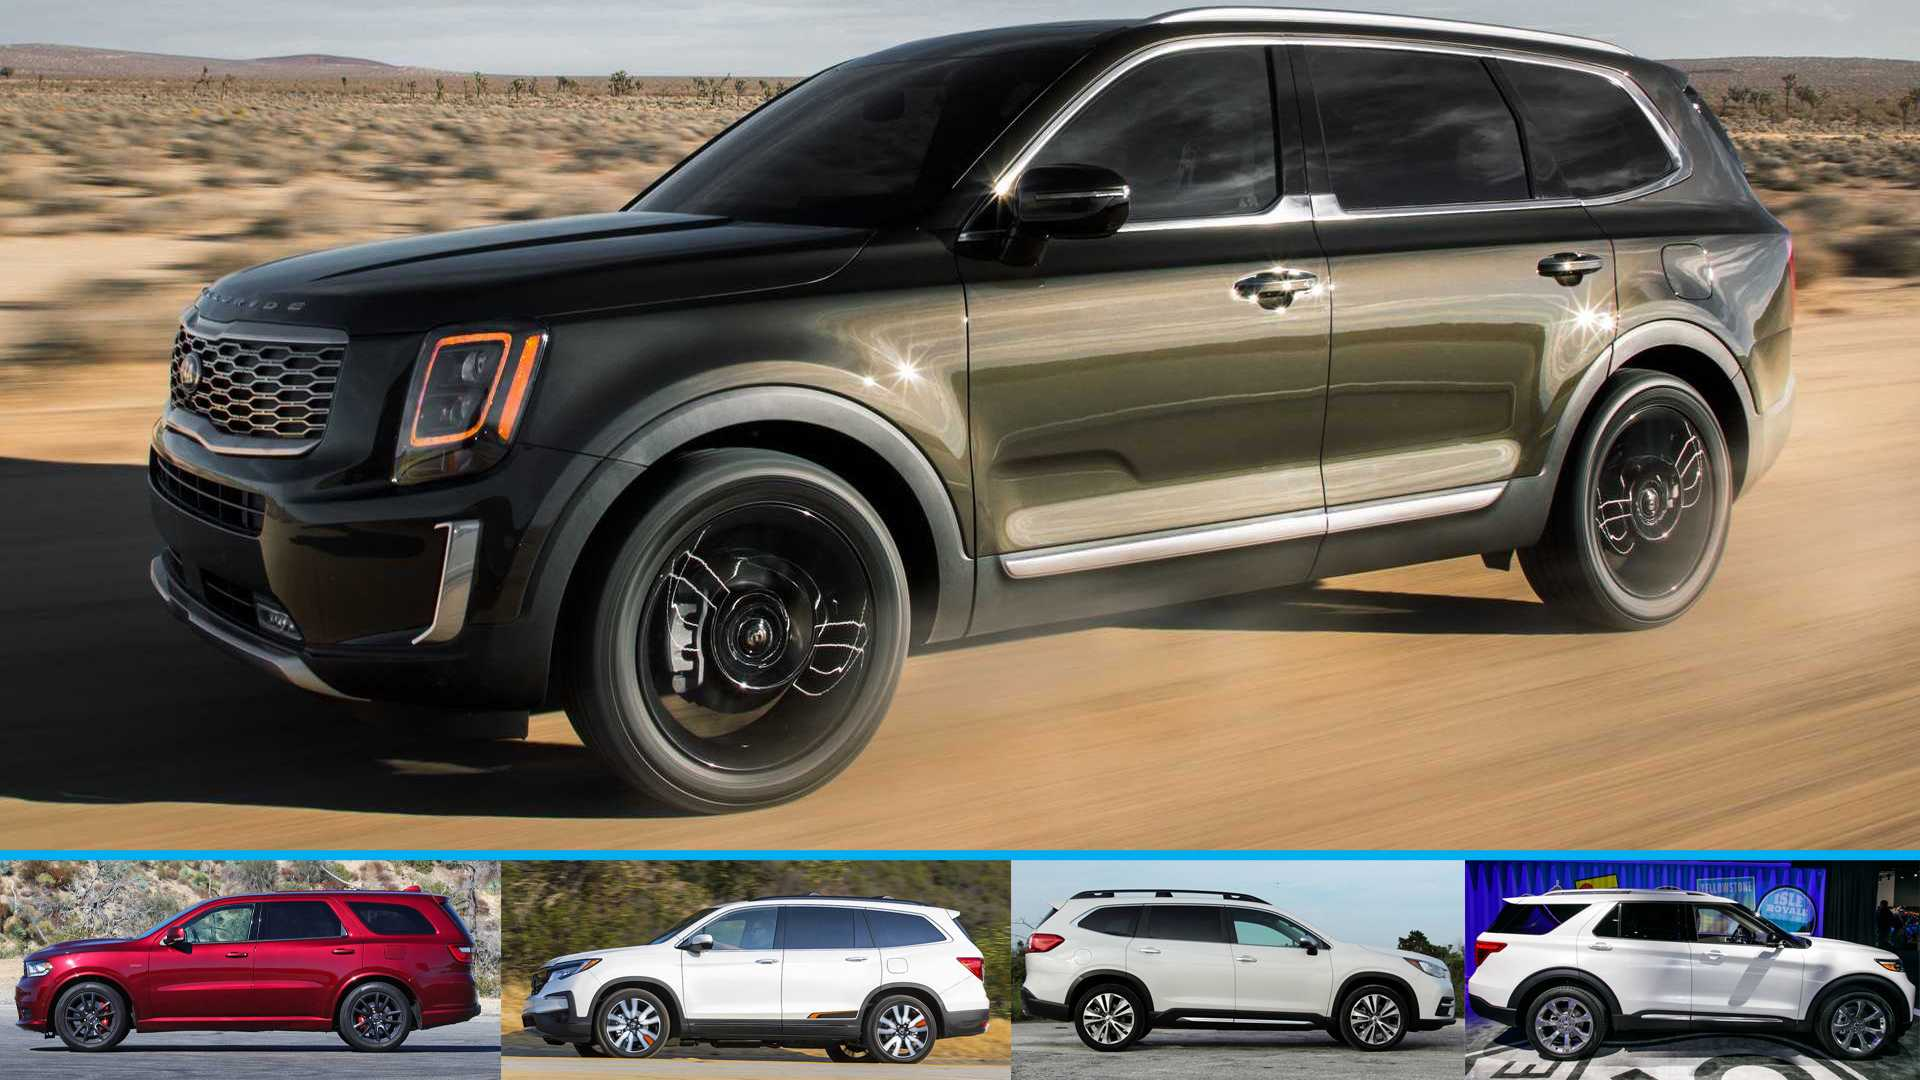 20 Gallery of 2020 Kia Telluride Vs Honda Pilot Pricing with 2020 Kia Telluride Vs Honda Pilot